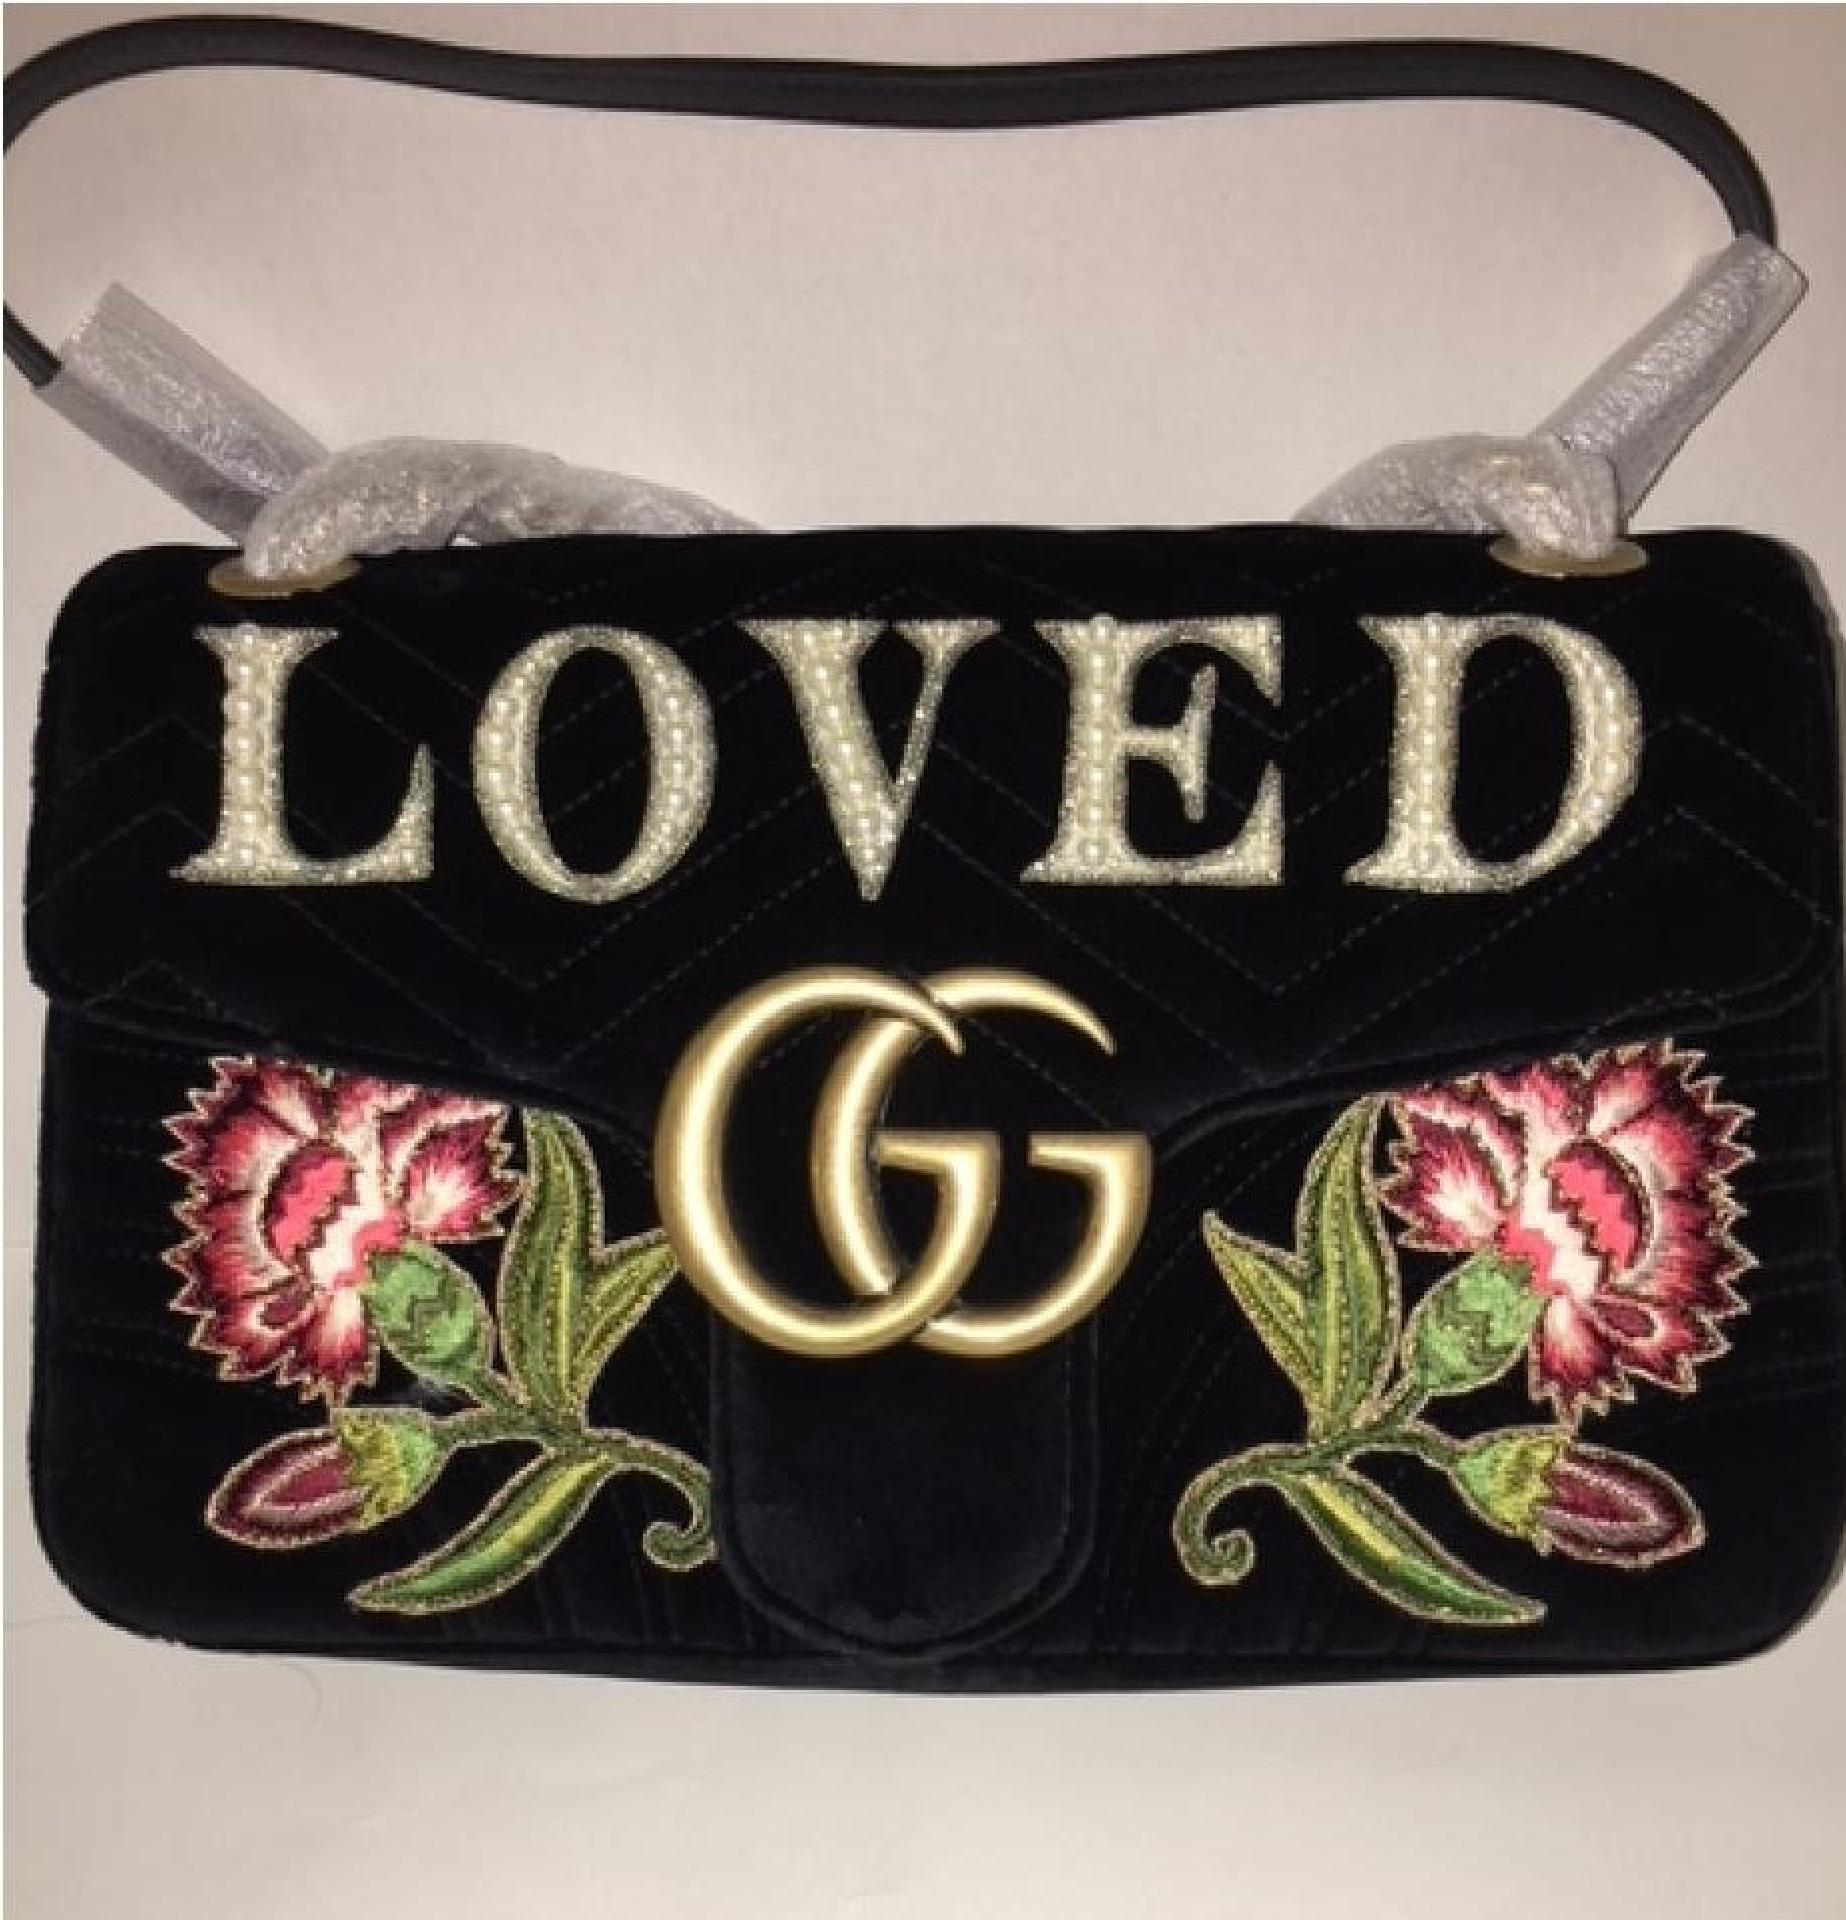 0000acf8f6b0 Gucci Marmont Gg Loved Floral Embroidered Velvet Shoulder Bag Tradesy